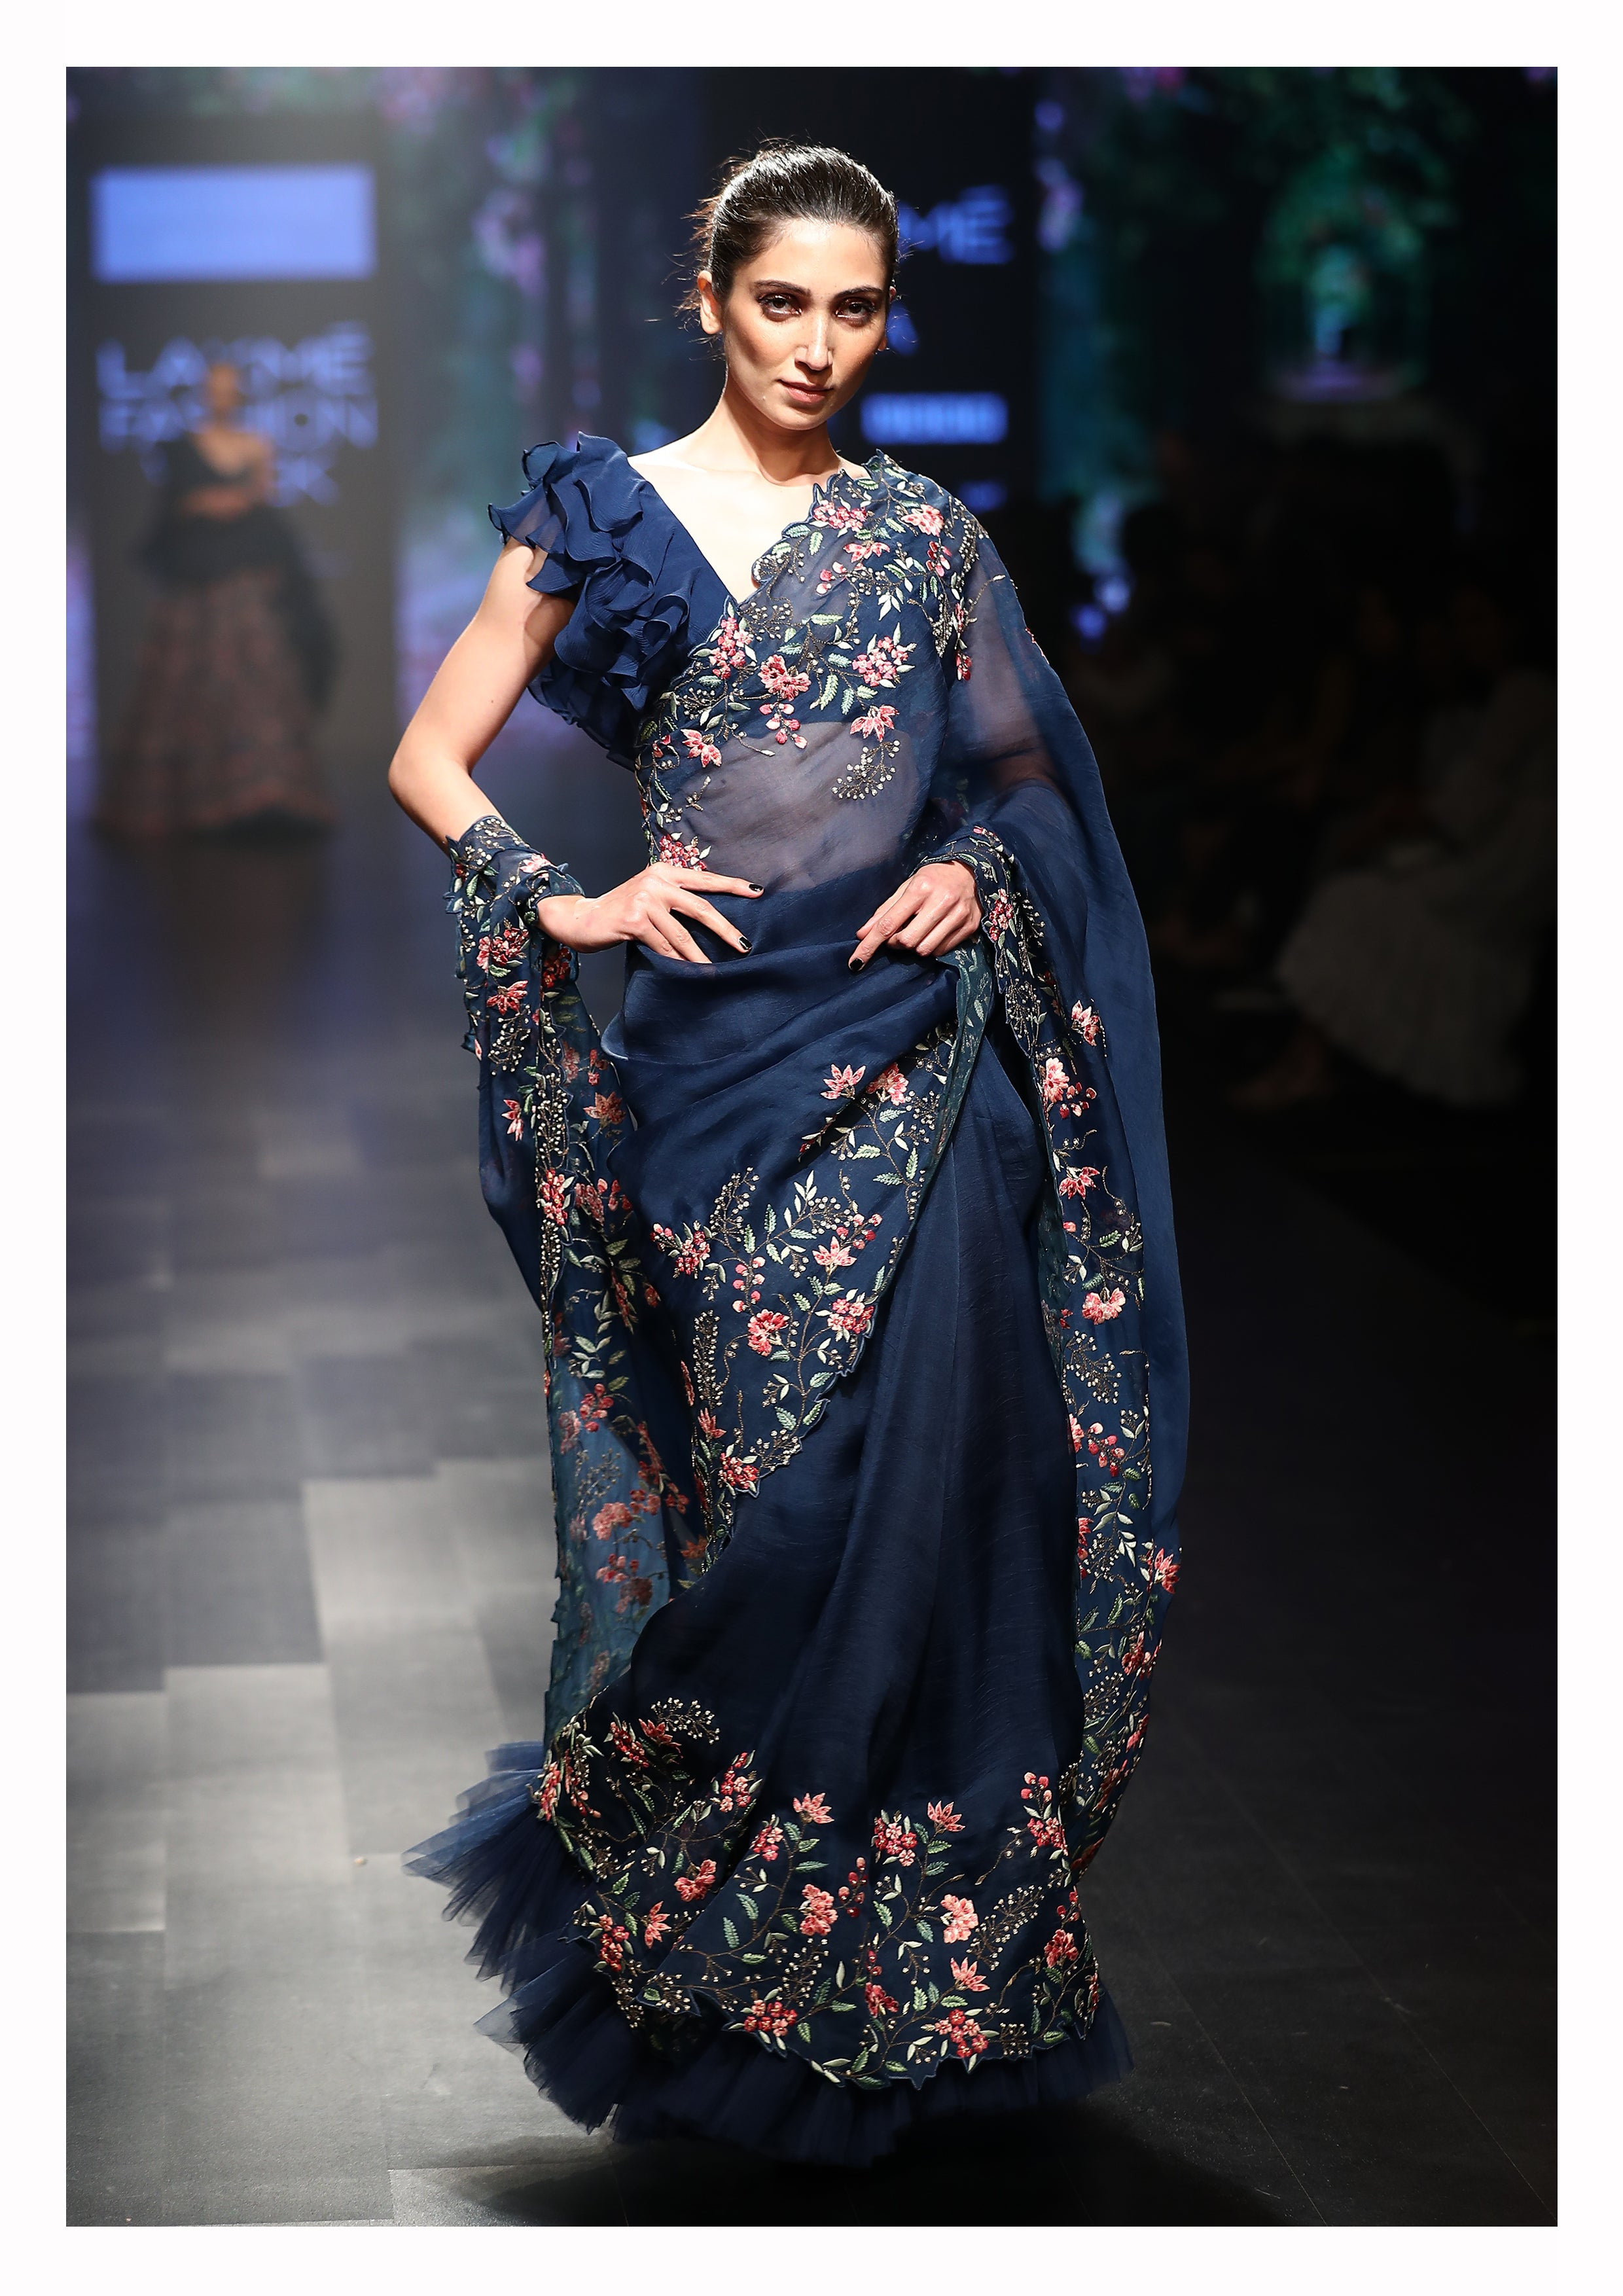 Ruffle Blouse With Floral Embroidered Saree - The Grand Trunk